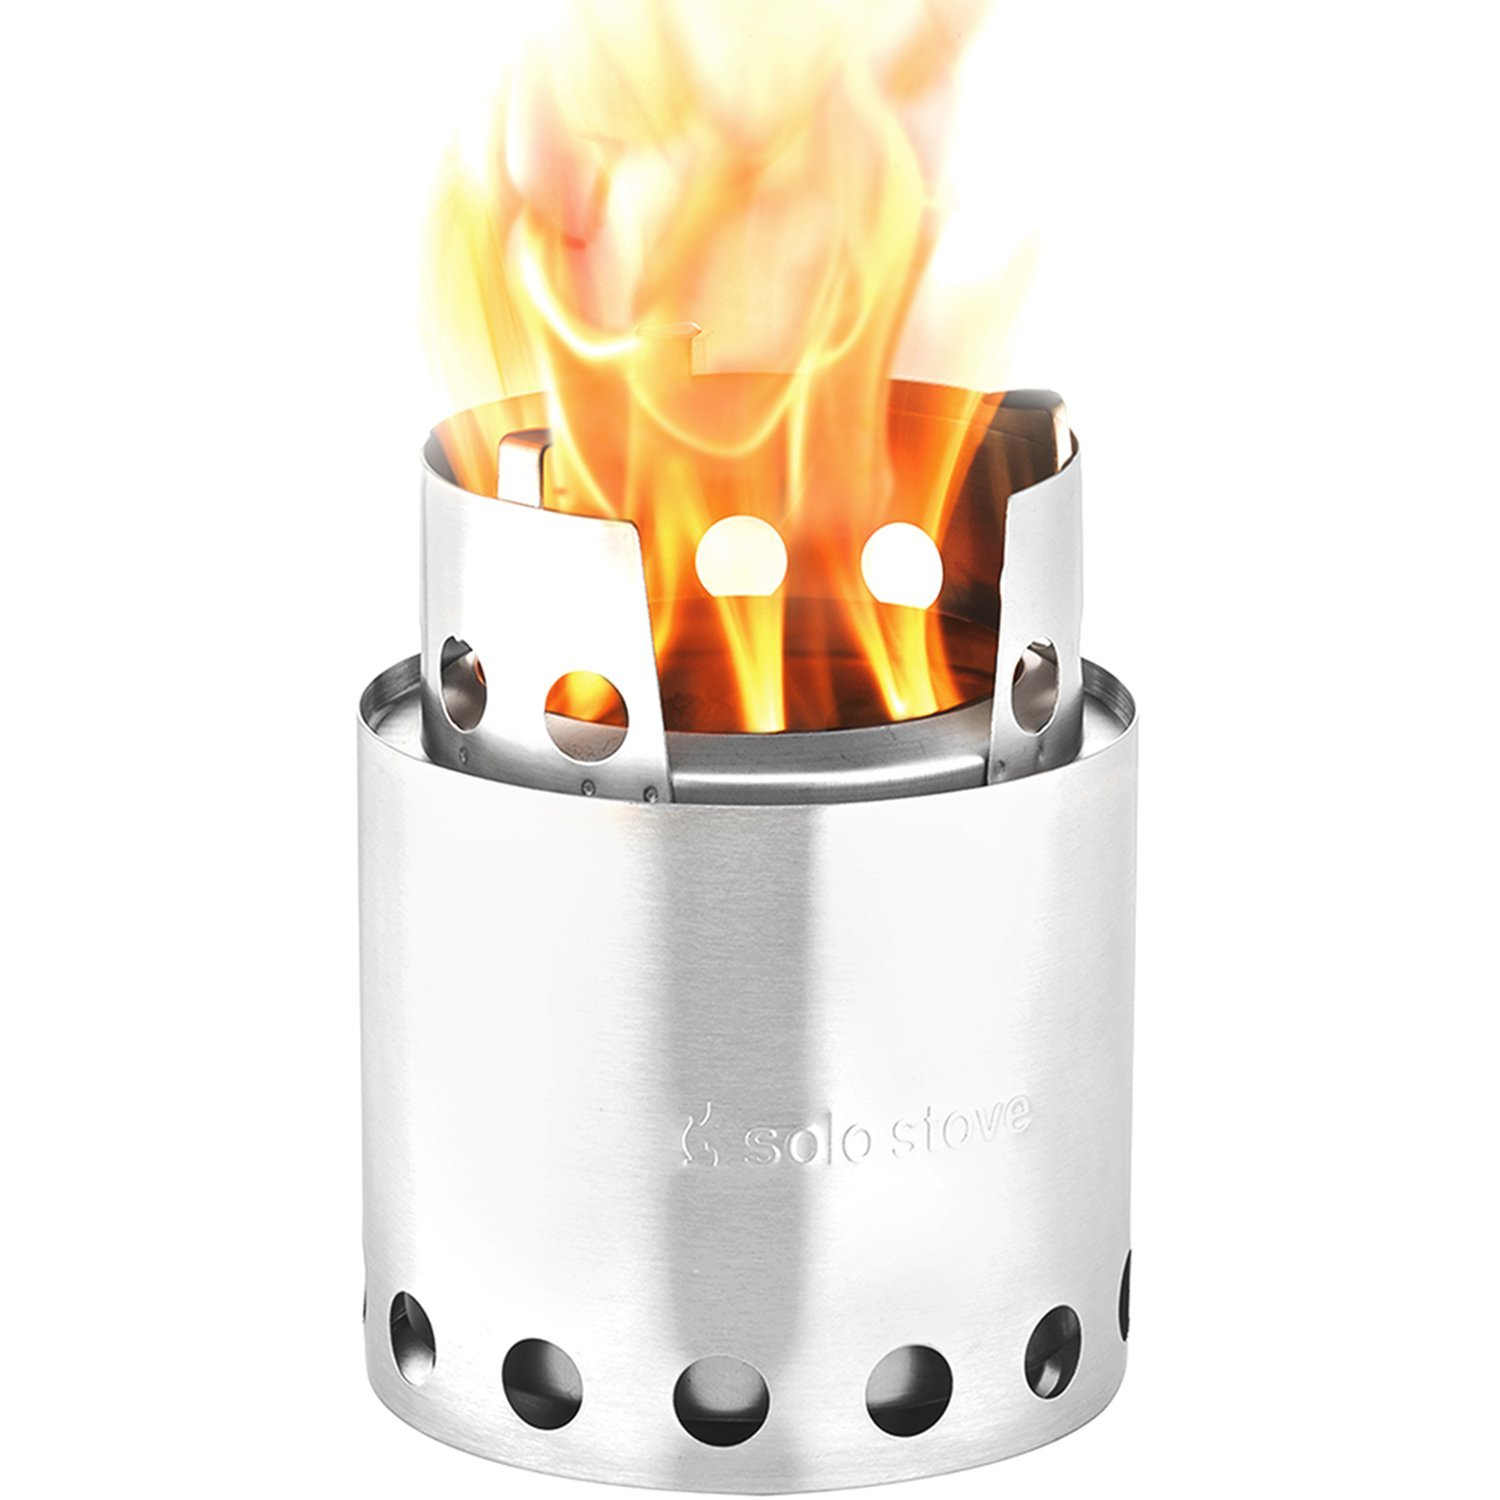 solo stove lite front view